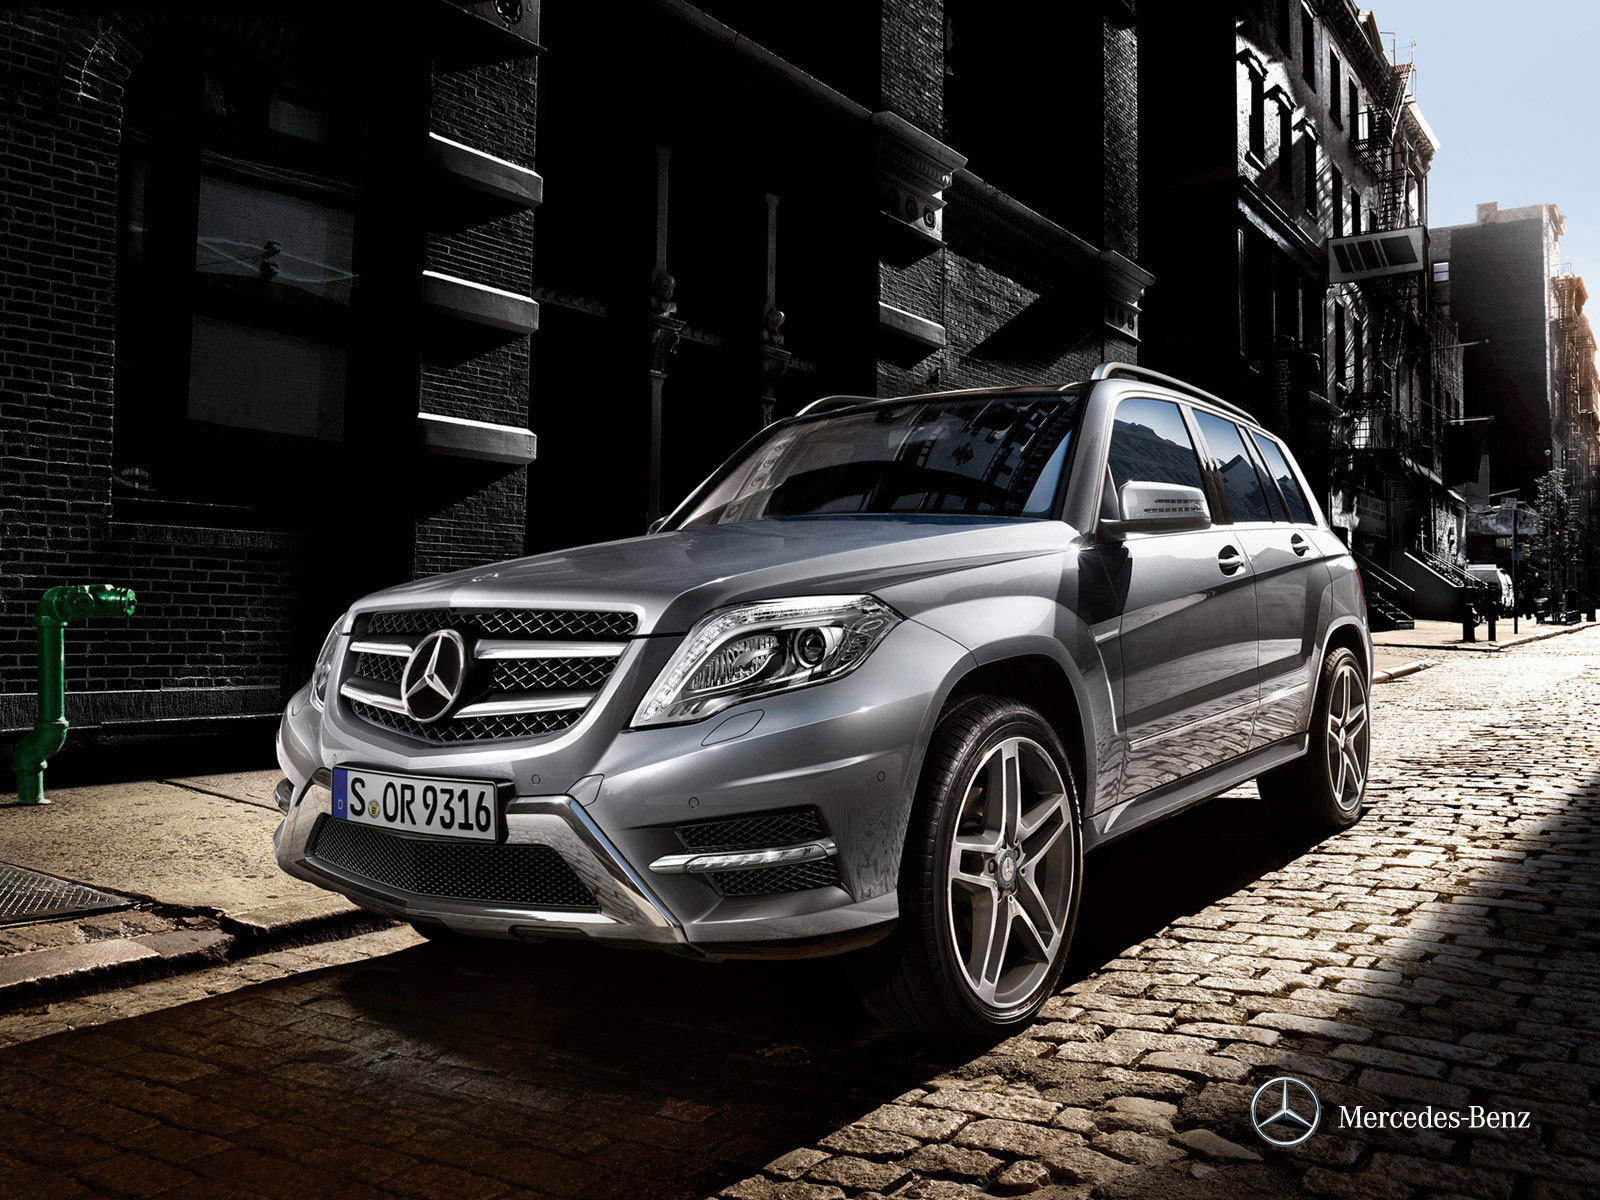 mercedes benz glk class 2012 glk 300 4matic in uae new car prices specs reviews photos. Black Bedroom Furniture Sets. Home Design Ideas